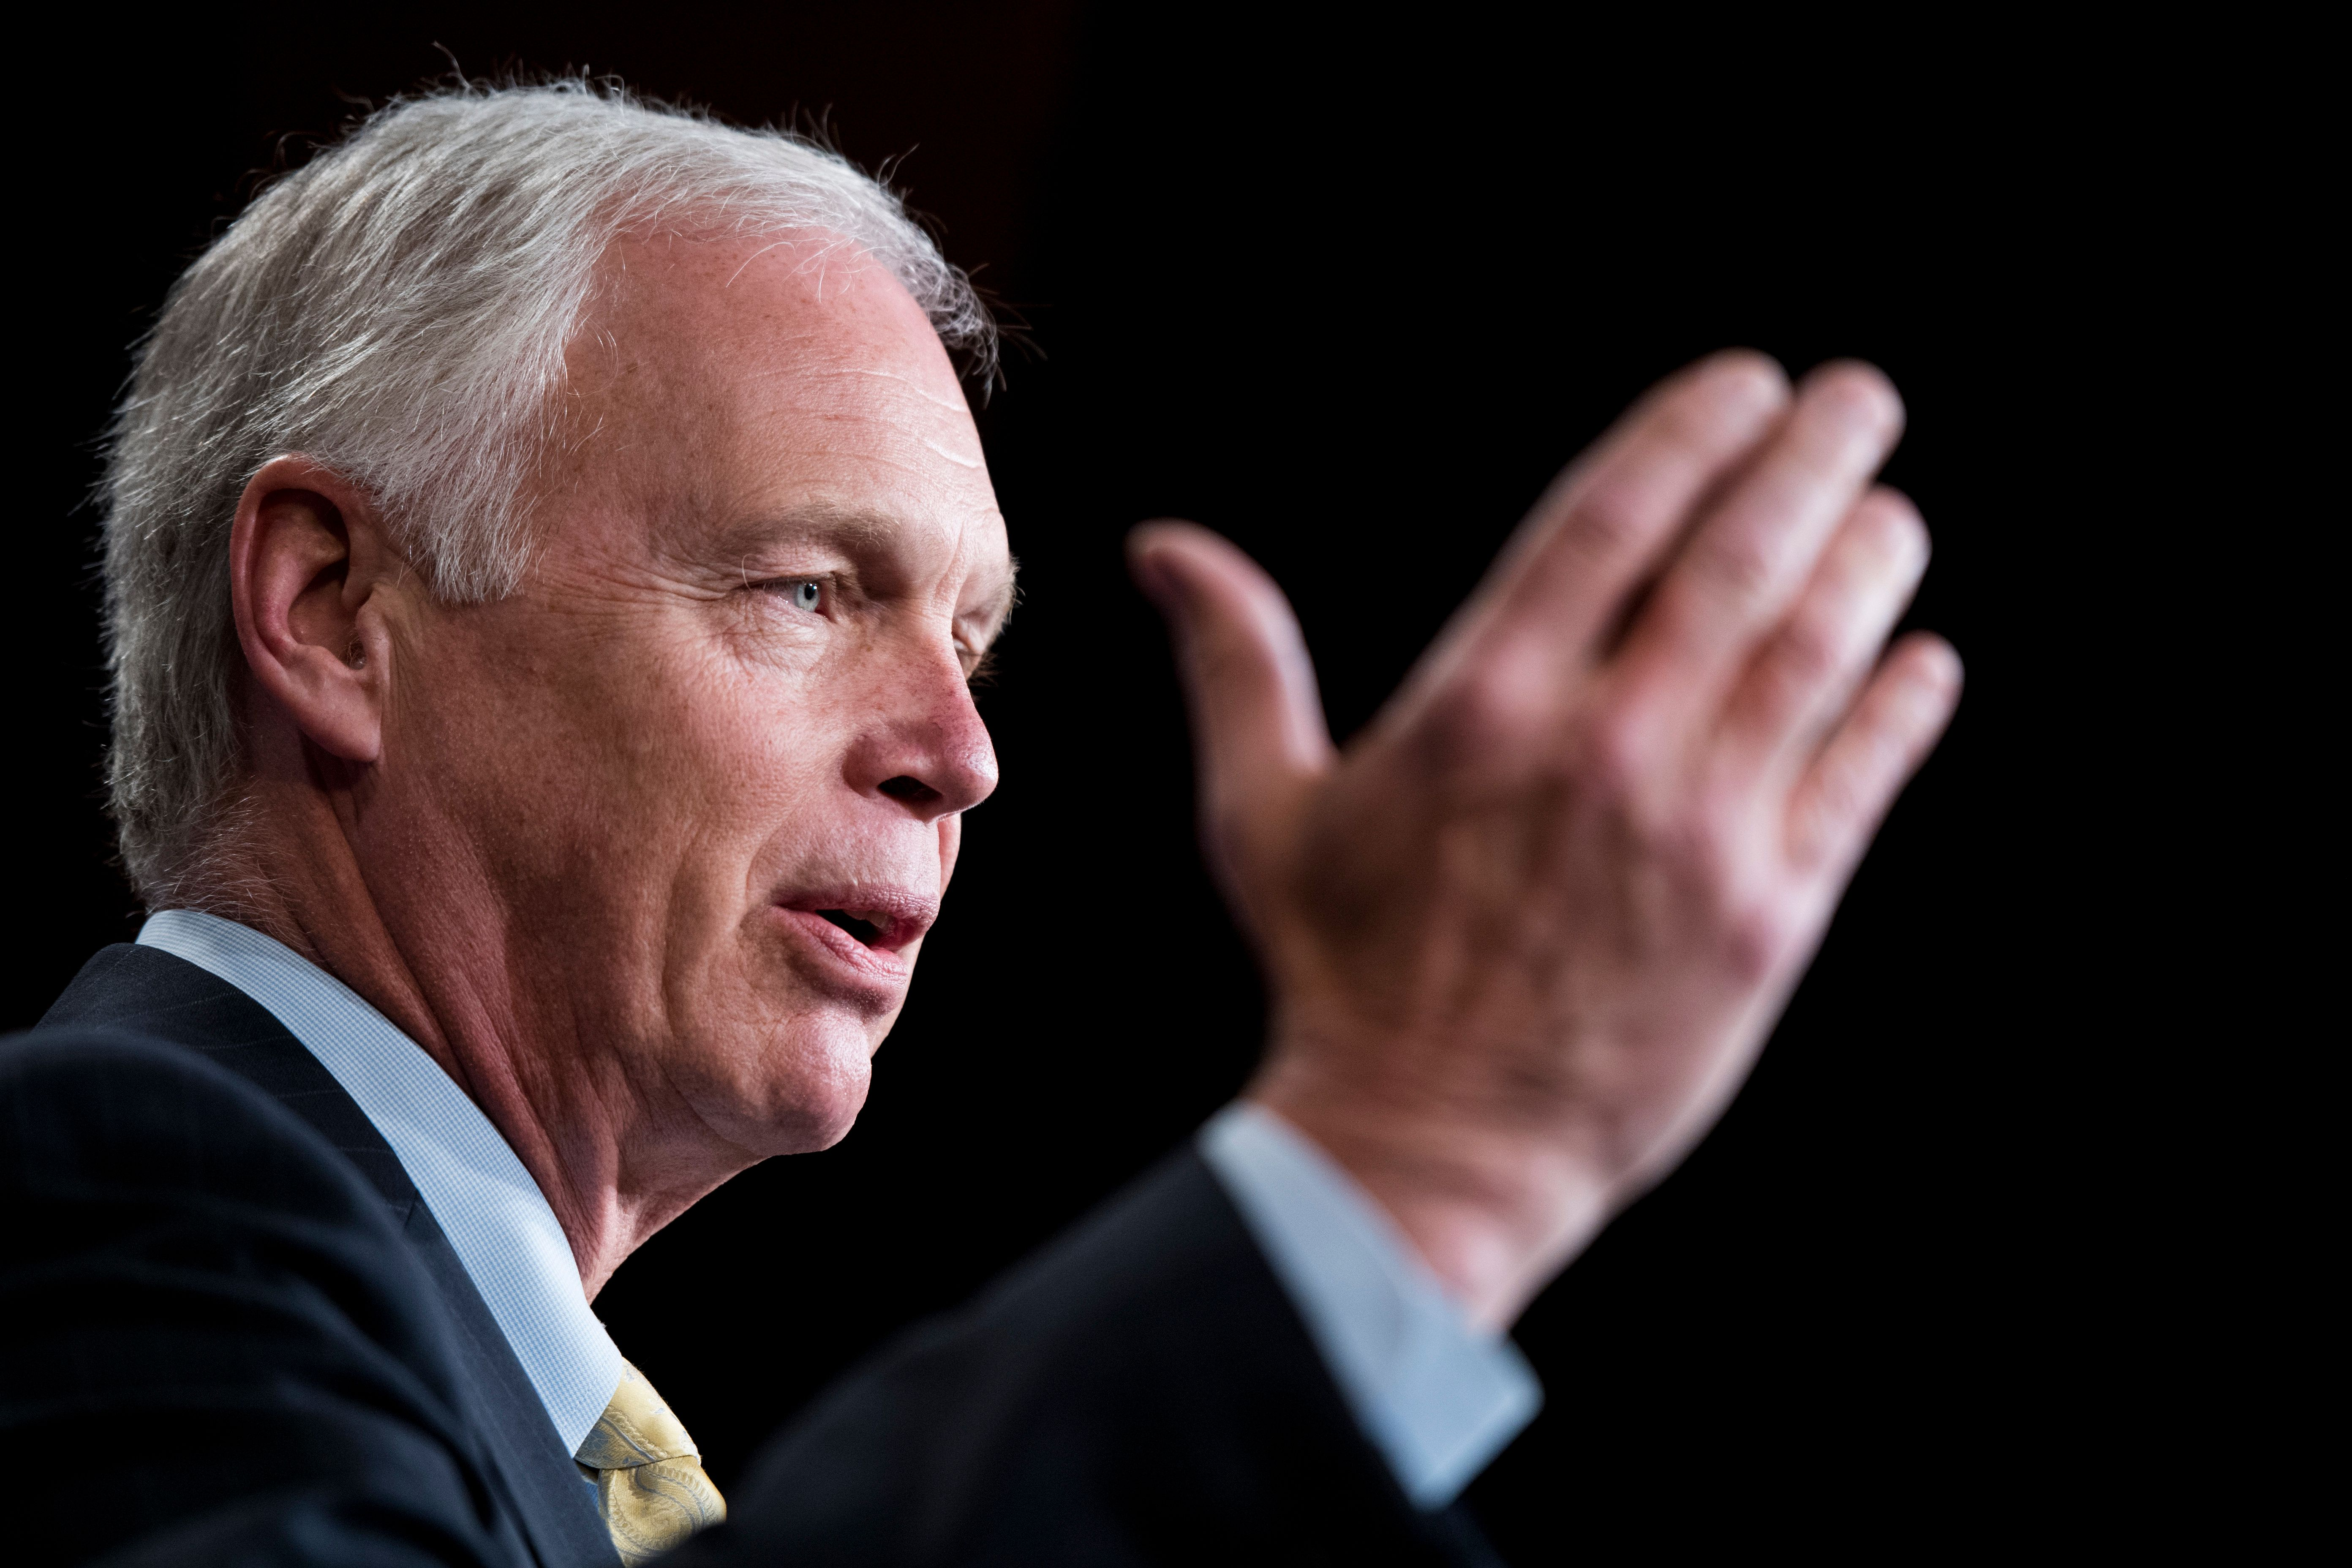 UNITED STATES - JUNE 19: Sen. Ron Johnson, R-Wisc., speaks during the Senate Republicans' news conference in the Capitol on Tuesday, June 19, 2018, to call on the Senate to vote on the rescissions package. (Photo By Bill Clark/CQ Roll Call)